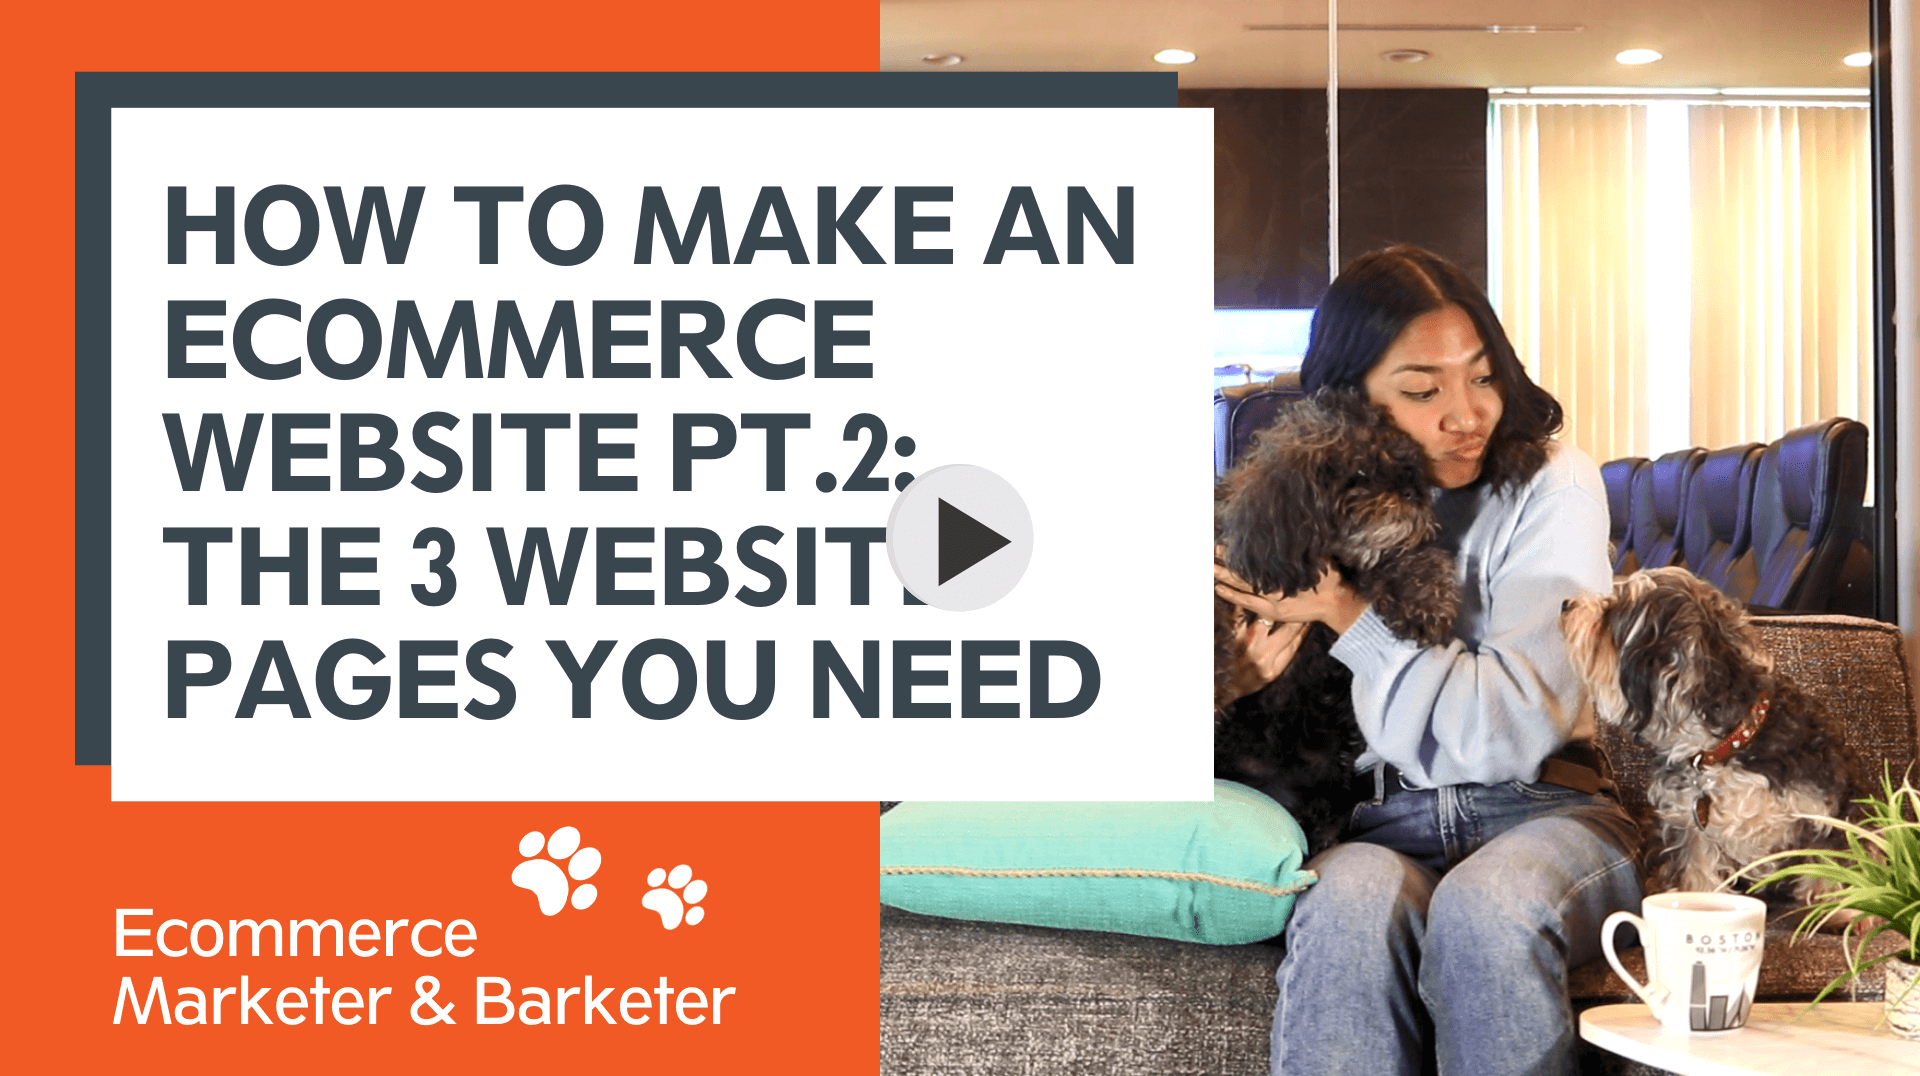 How to Make an ECommerce Website Part 2 Vidoe Thumbnail